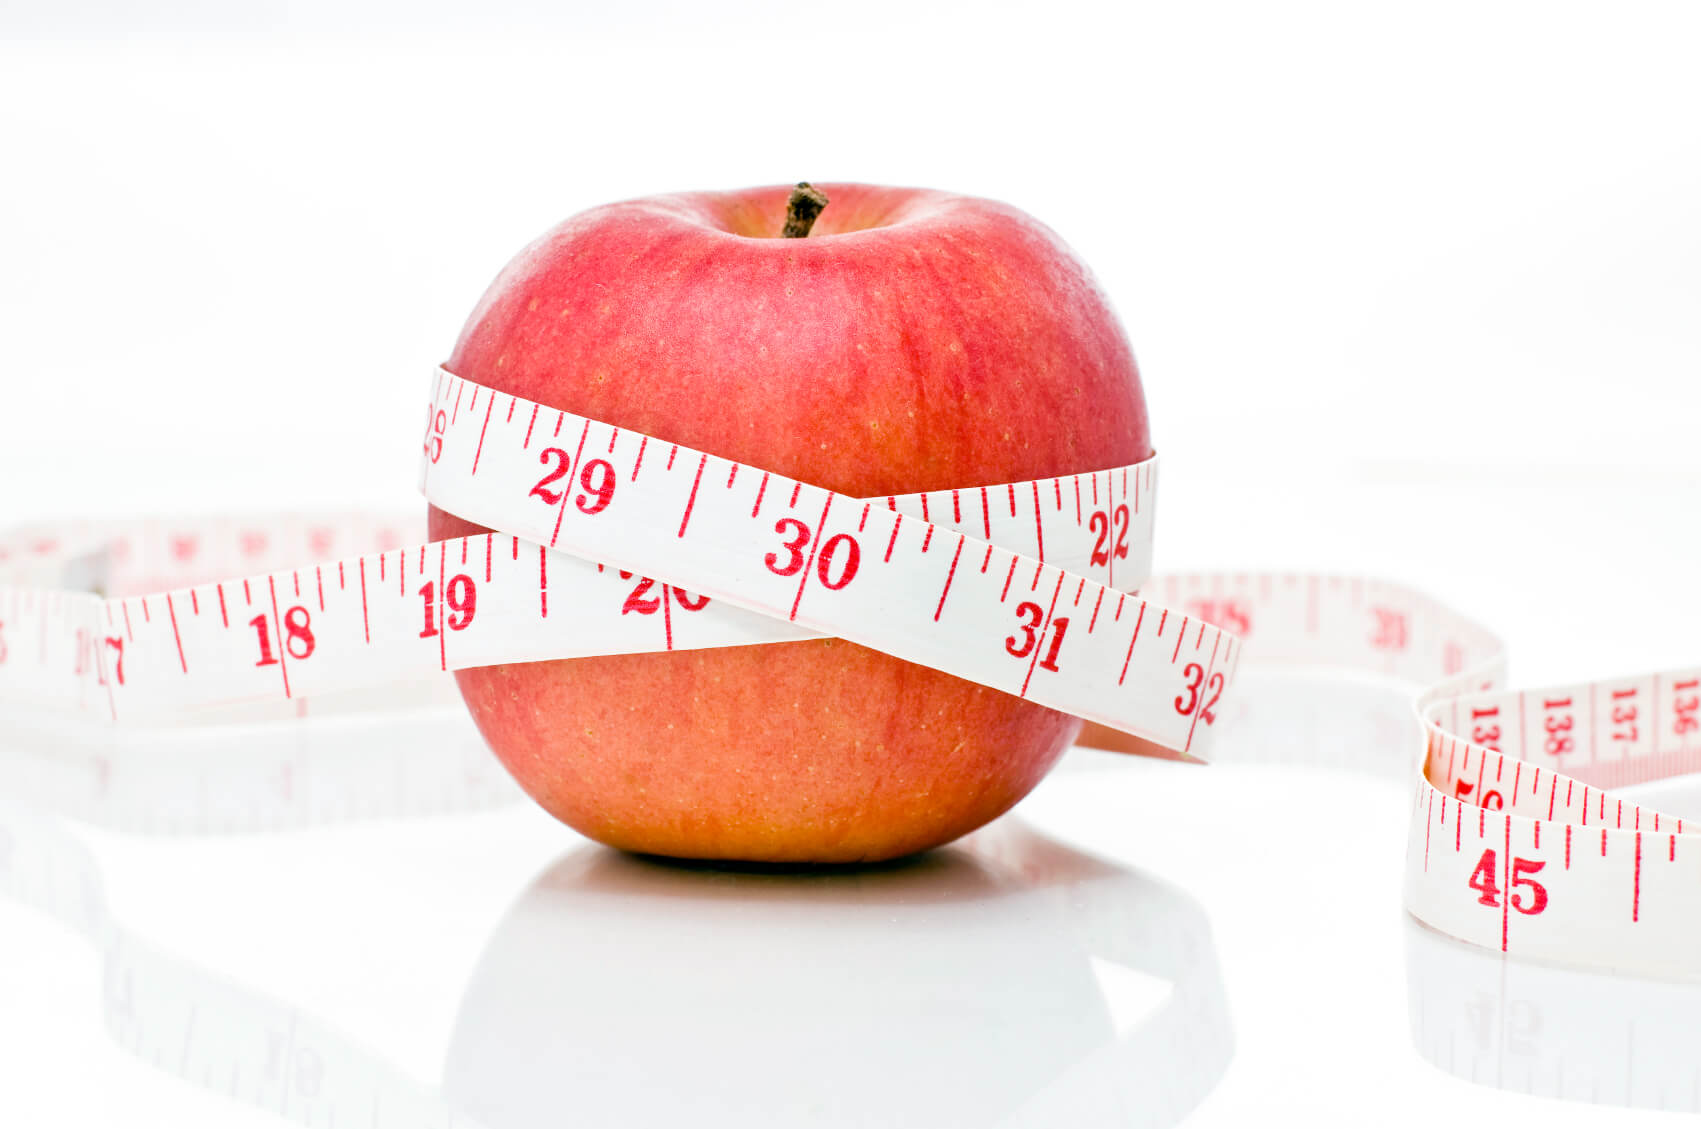 Apples are great for losing weight